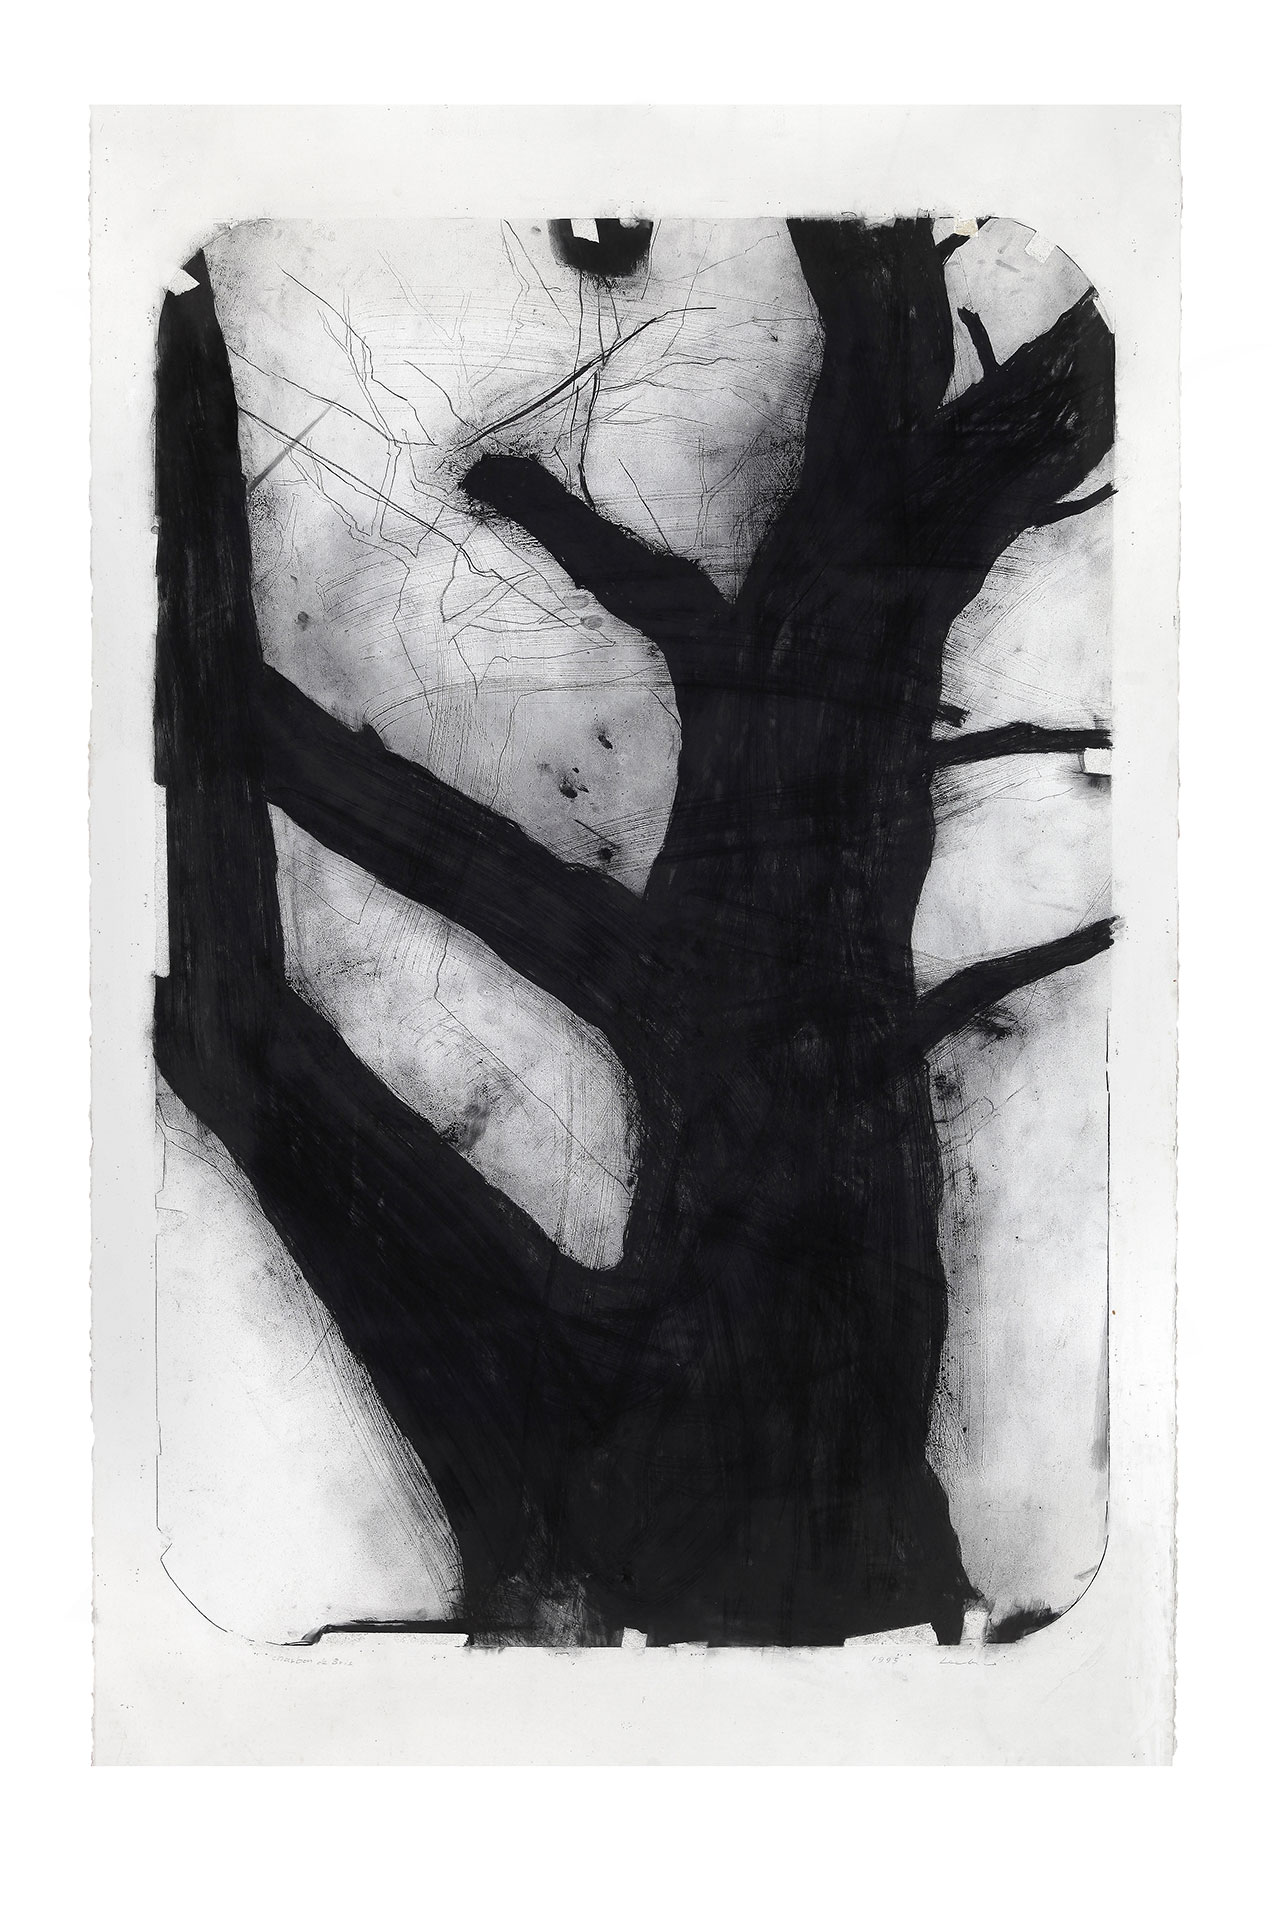 Dessin, 1997. Charcoal on paper, 145 x 114 cm. © Lee Bae.